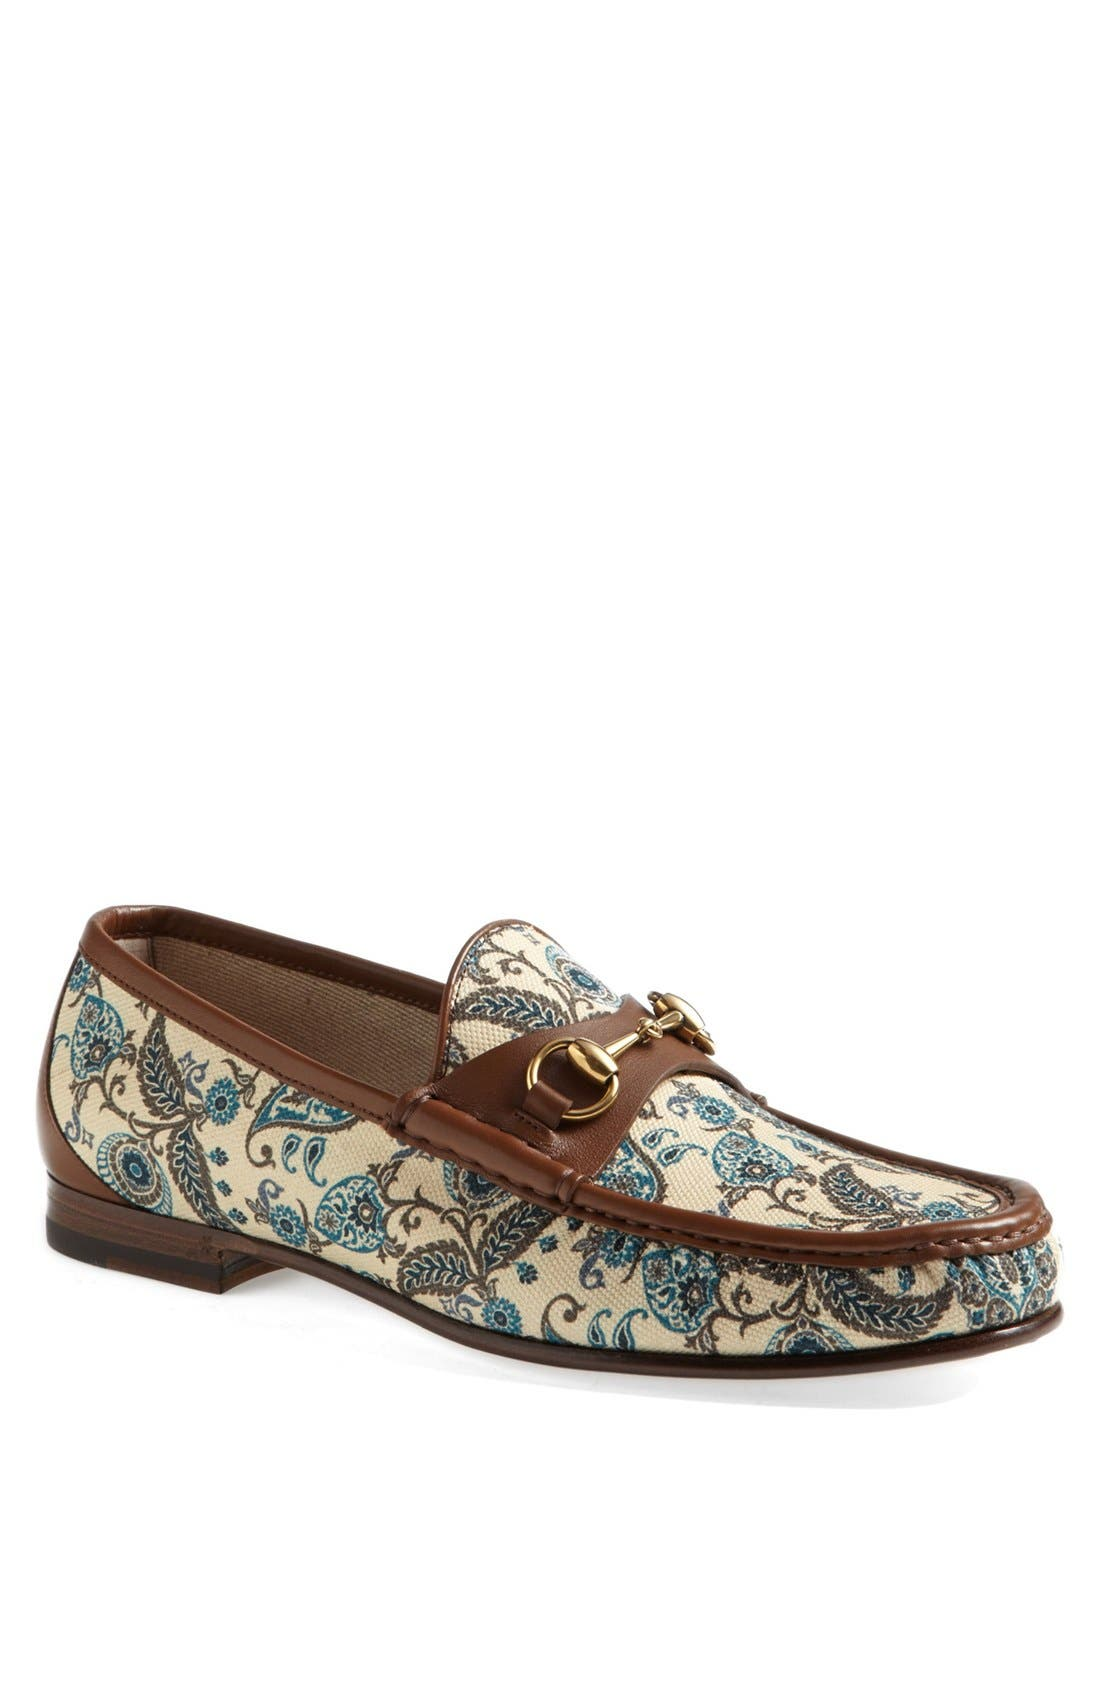 Main Image - Gucci 'Roos' Paisley Bit Loafer